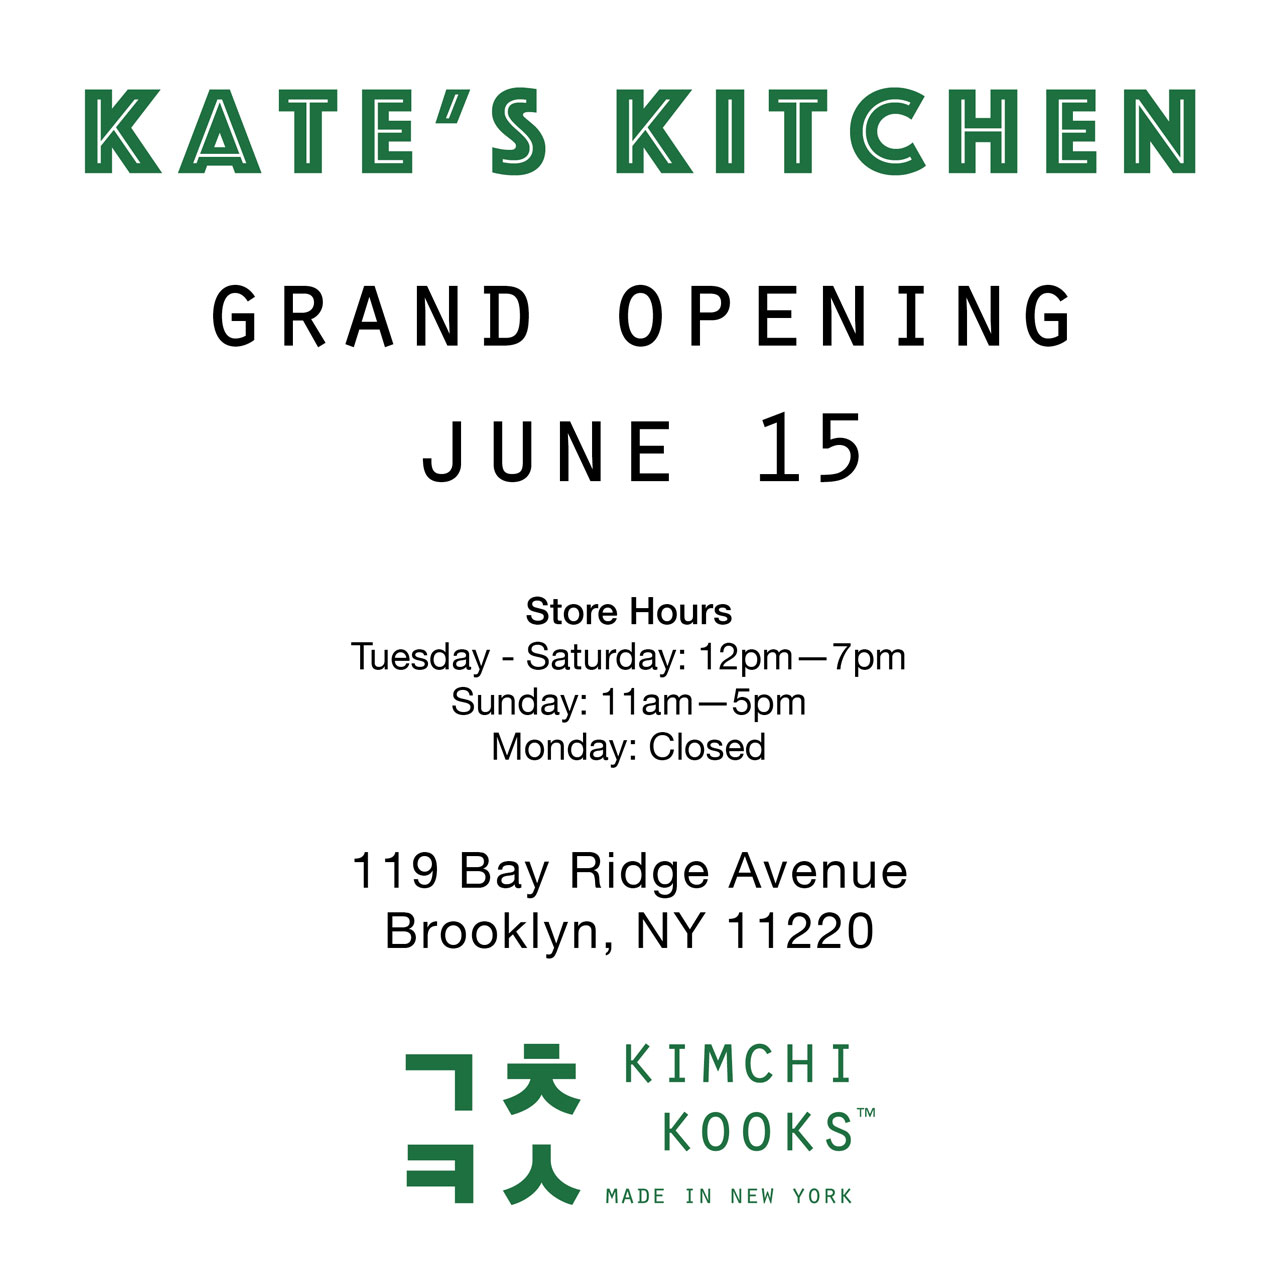 Kate's Kitchen Grand Opening June 15. Store Hours: Tuesday to Saturday 12 pm to 7 pm. Sunday 11 am to 5 pm. Monday closed. 119 Bay Ridge Avenue, Brooklyn, NY 11220. Kimchi Kooks, Made in New York